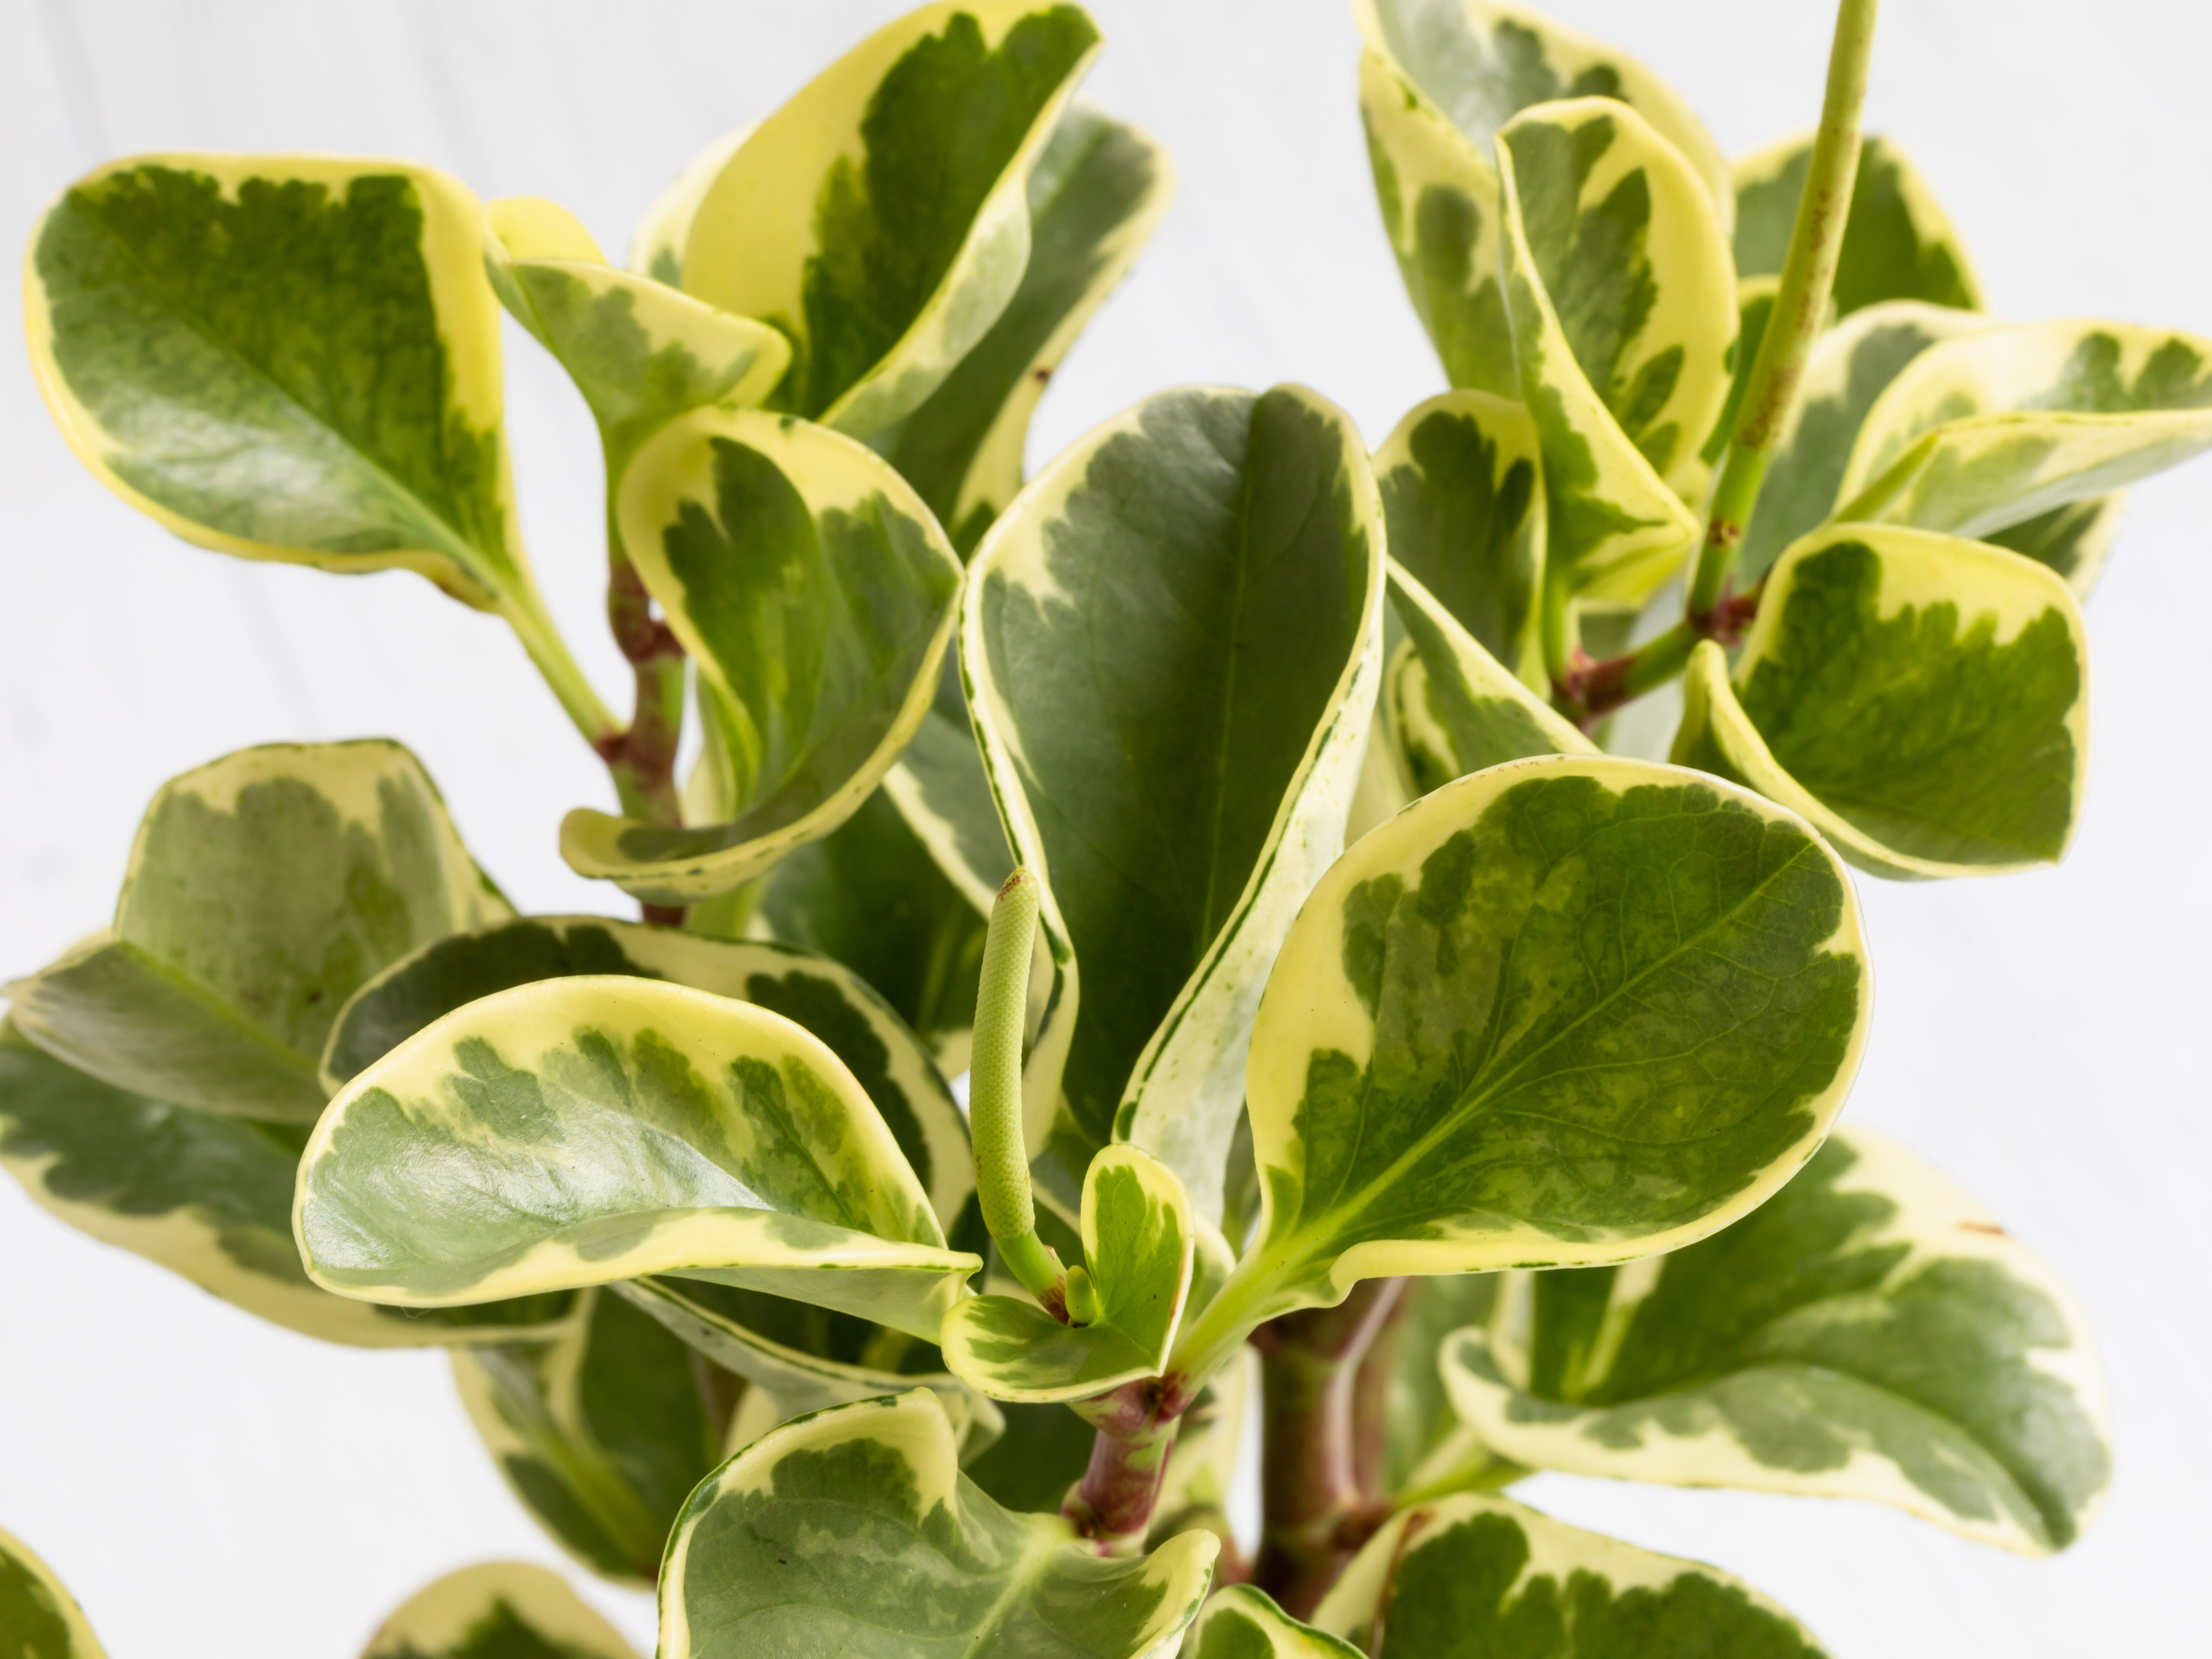 Peperomia Plants Indoor Care And Growing Guide